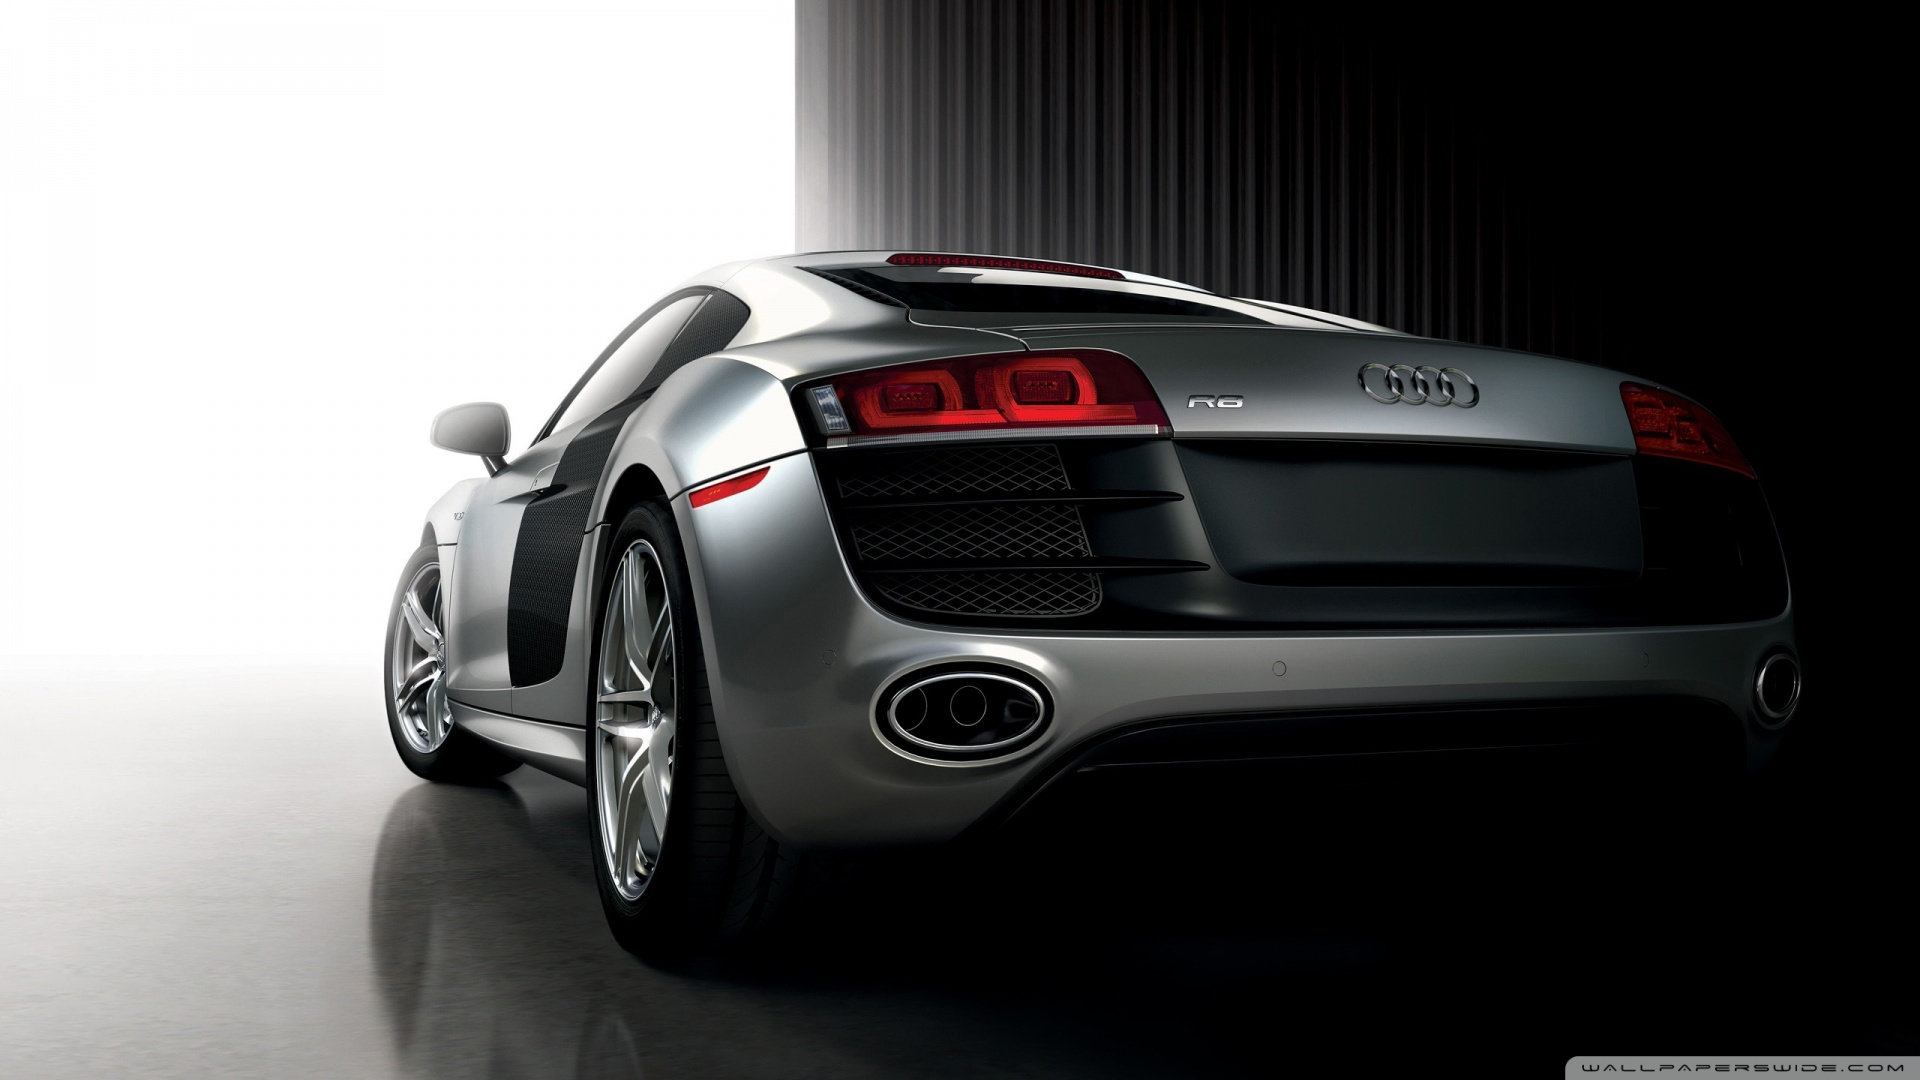 Wallpaper Mobil Audi Sport: 43 Audi Wallpapers/Backgrounds In HD For Free Download